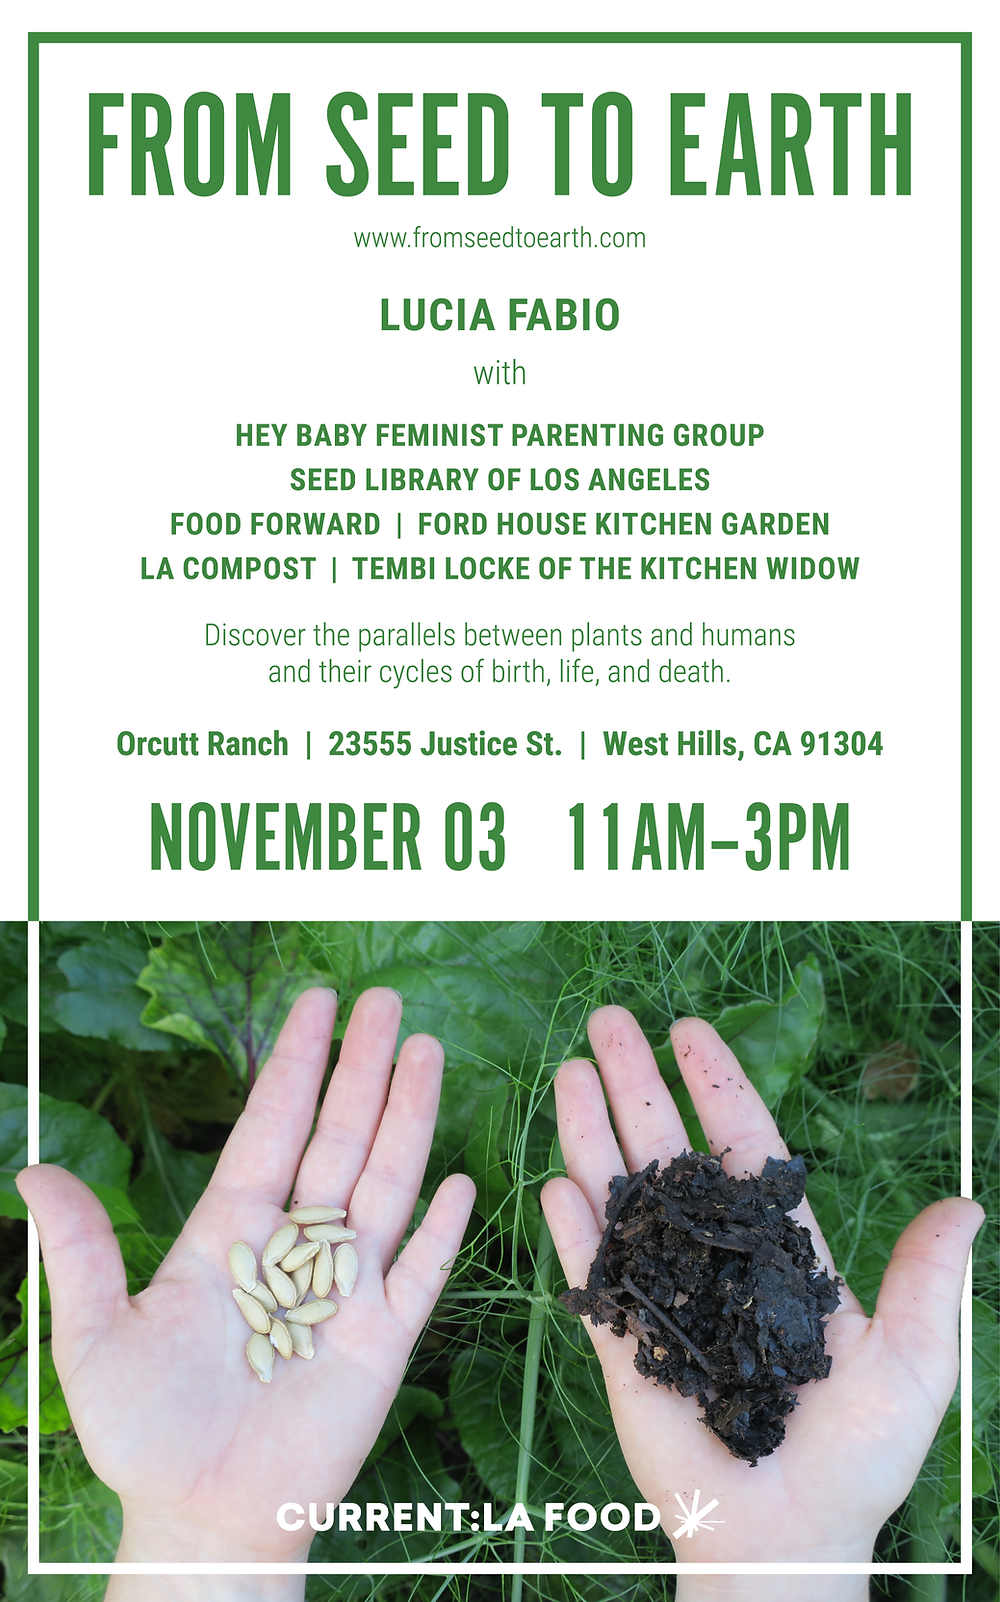 FROM SEED TO EARTH 11/3/19 11-3pm Orcutt Valley Ranch